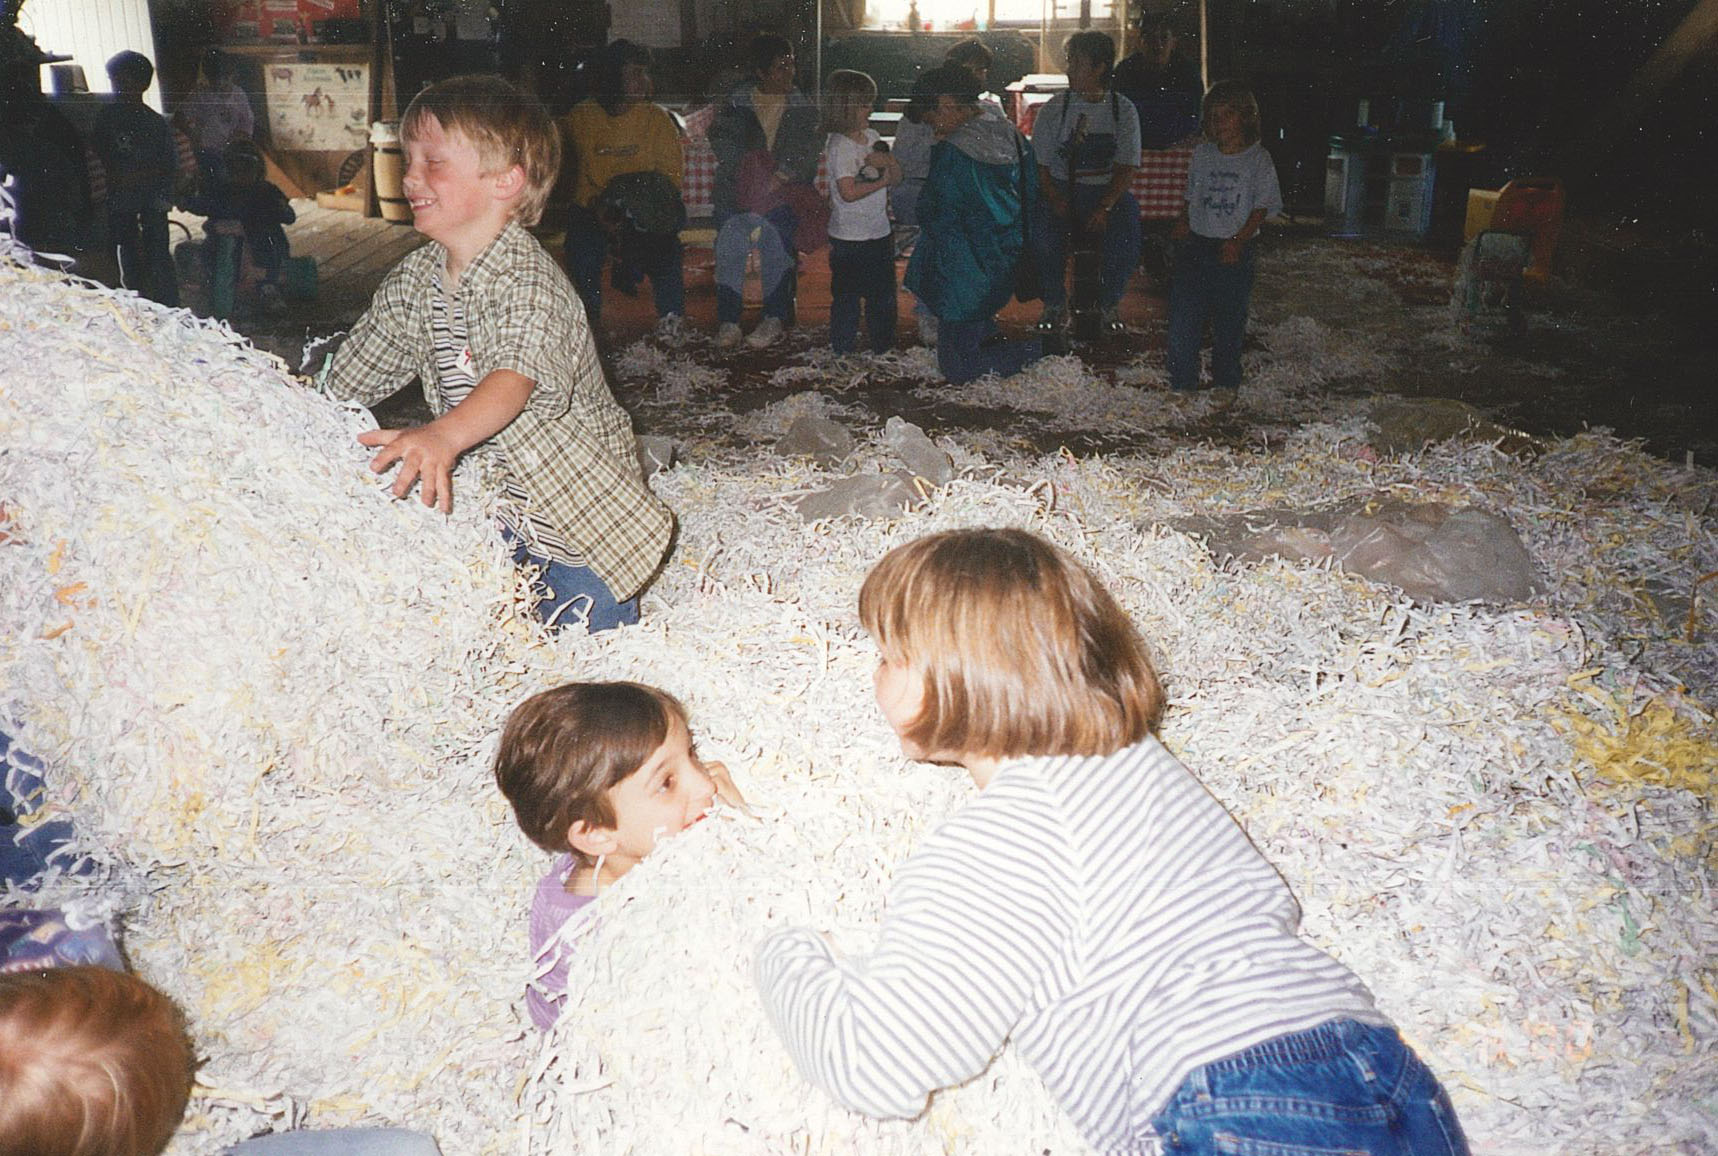 Chick-hatching time at the Moyers' farm always meant there was shredded paper for visiting kids to jump in